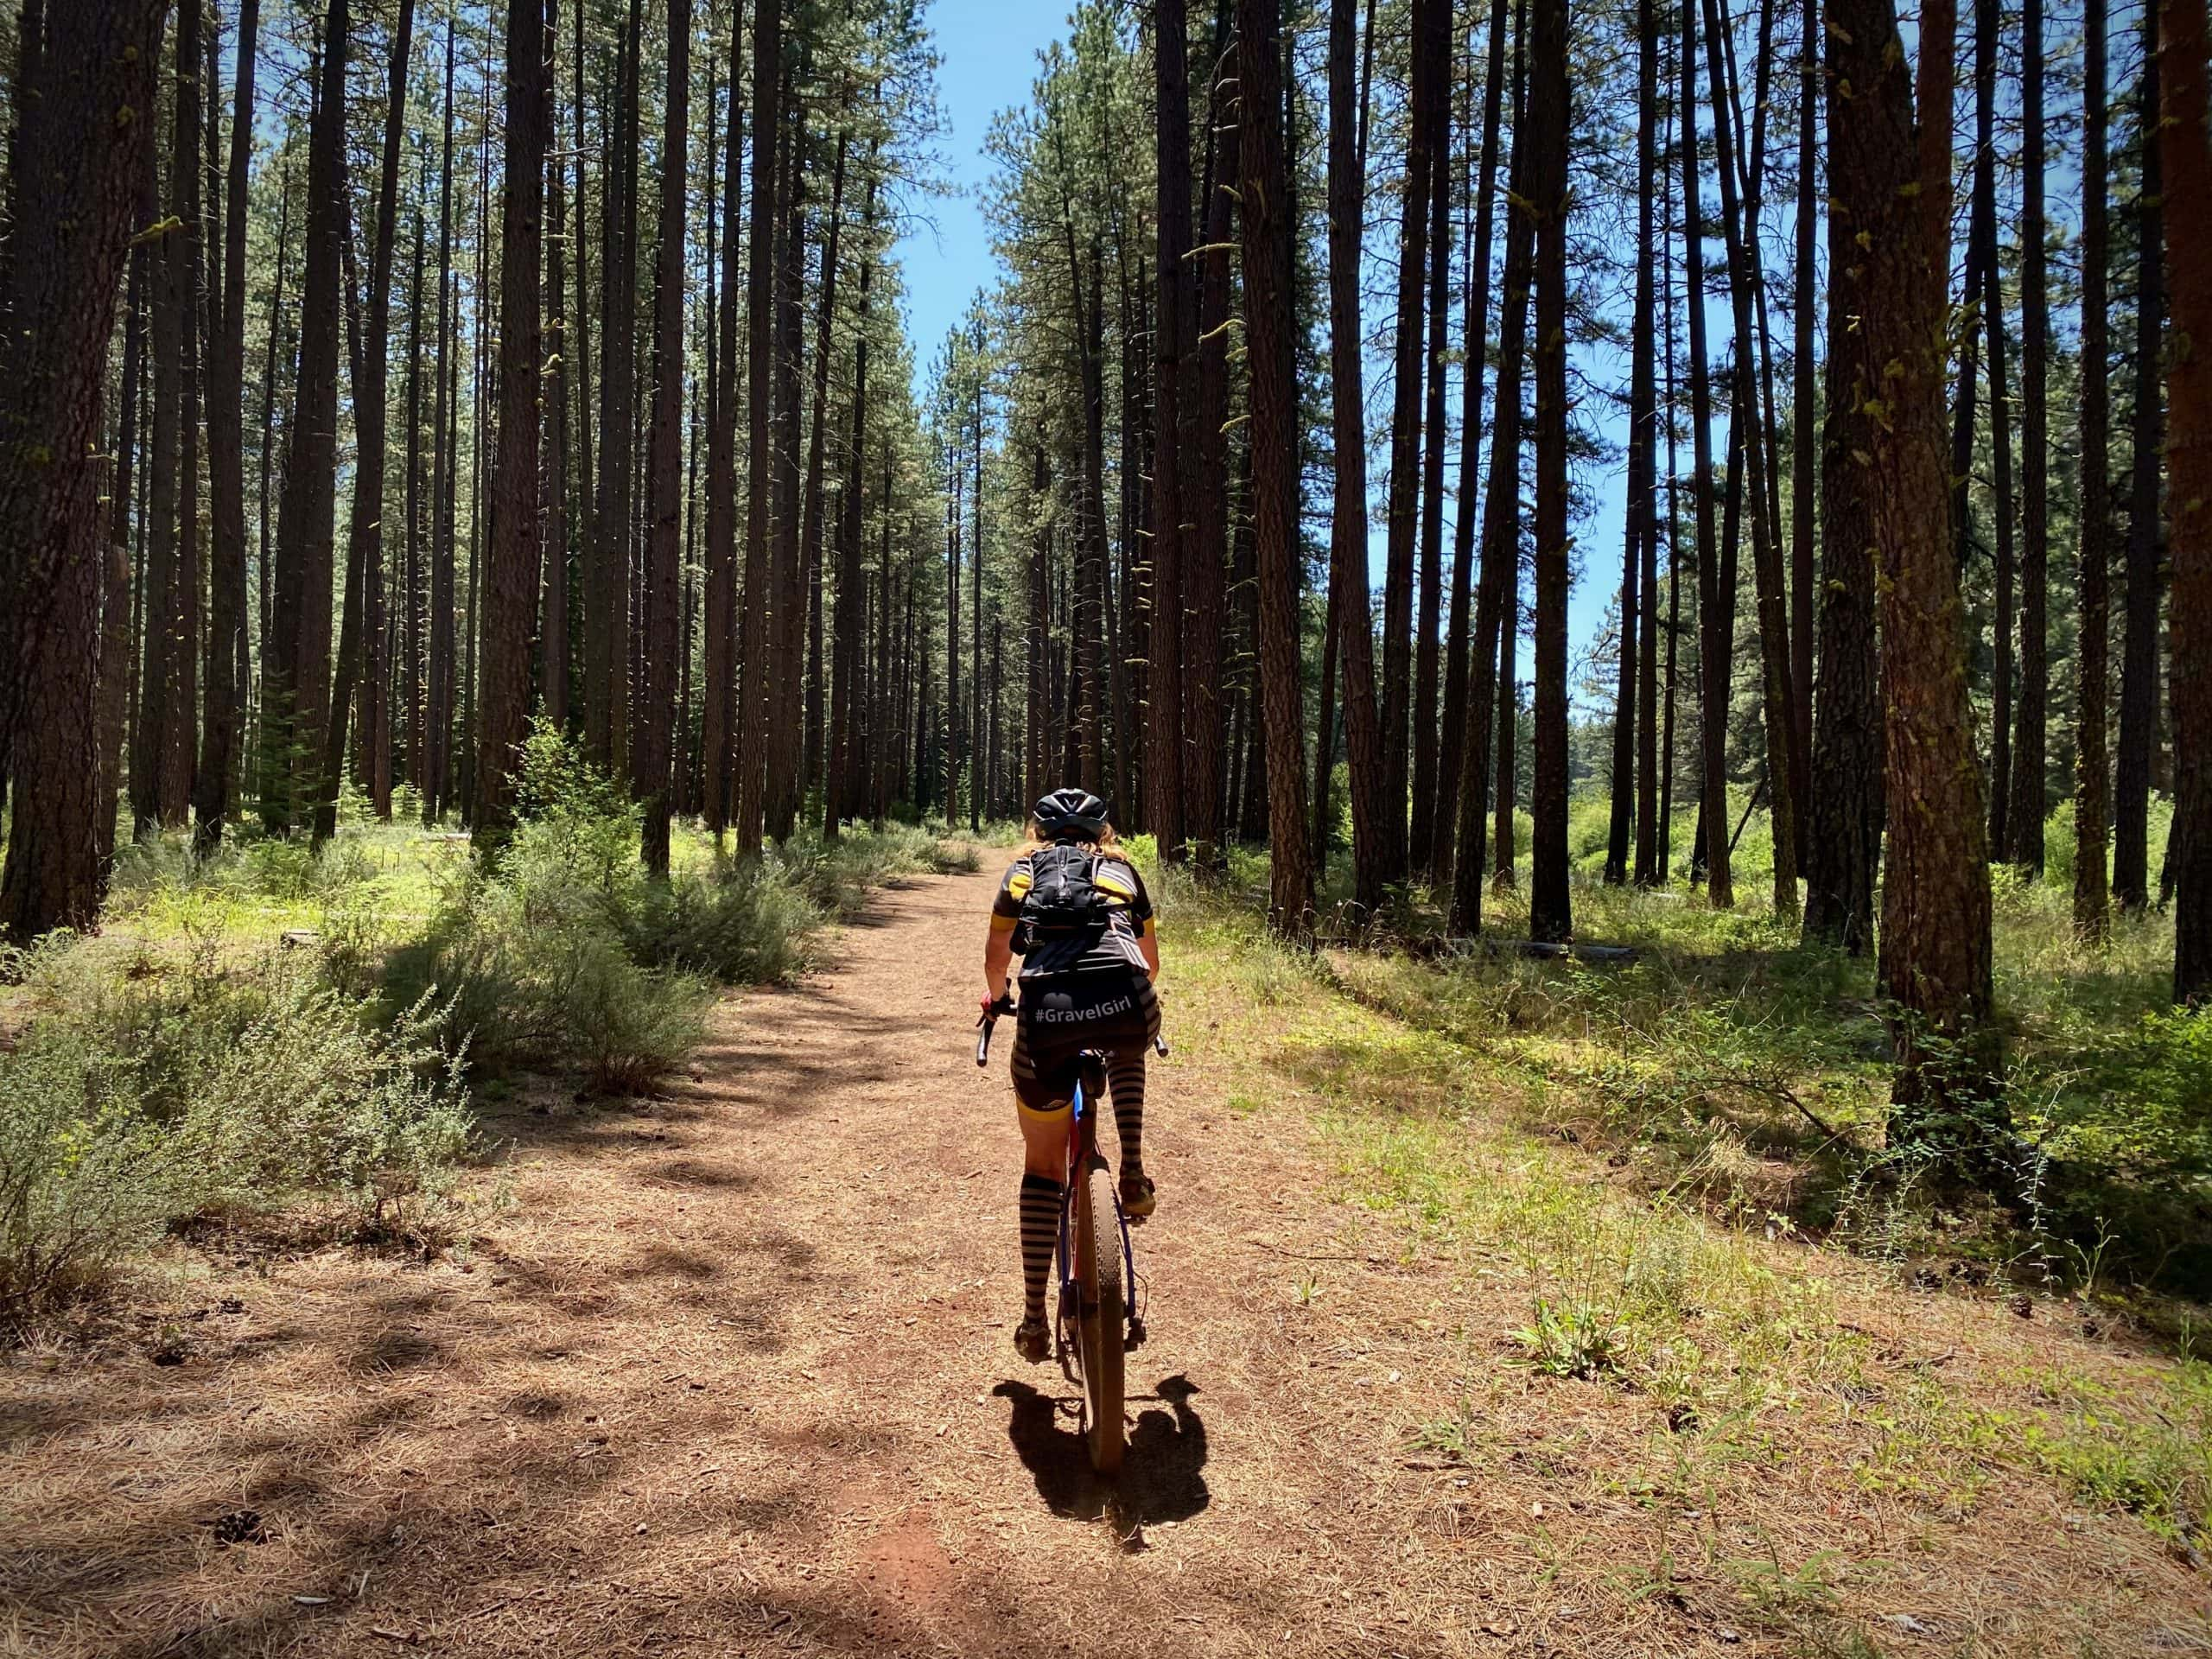 Gravel Girl on single-track / double-track trail, along the Metolius River,  just south of Camp Sherman, Oregon.